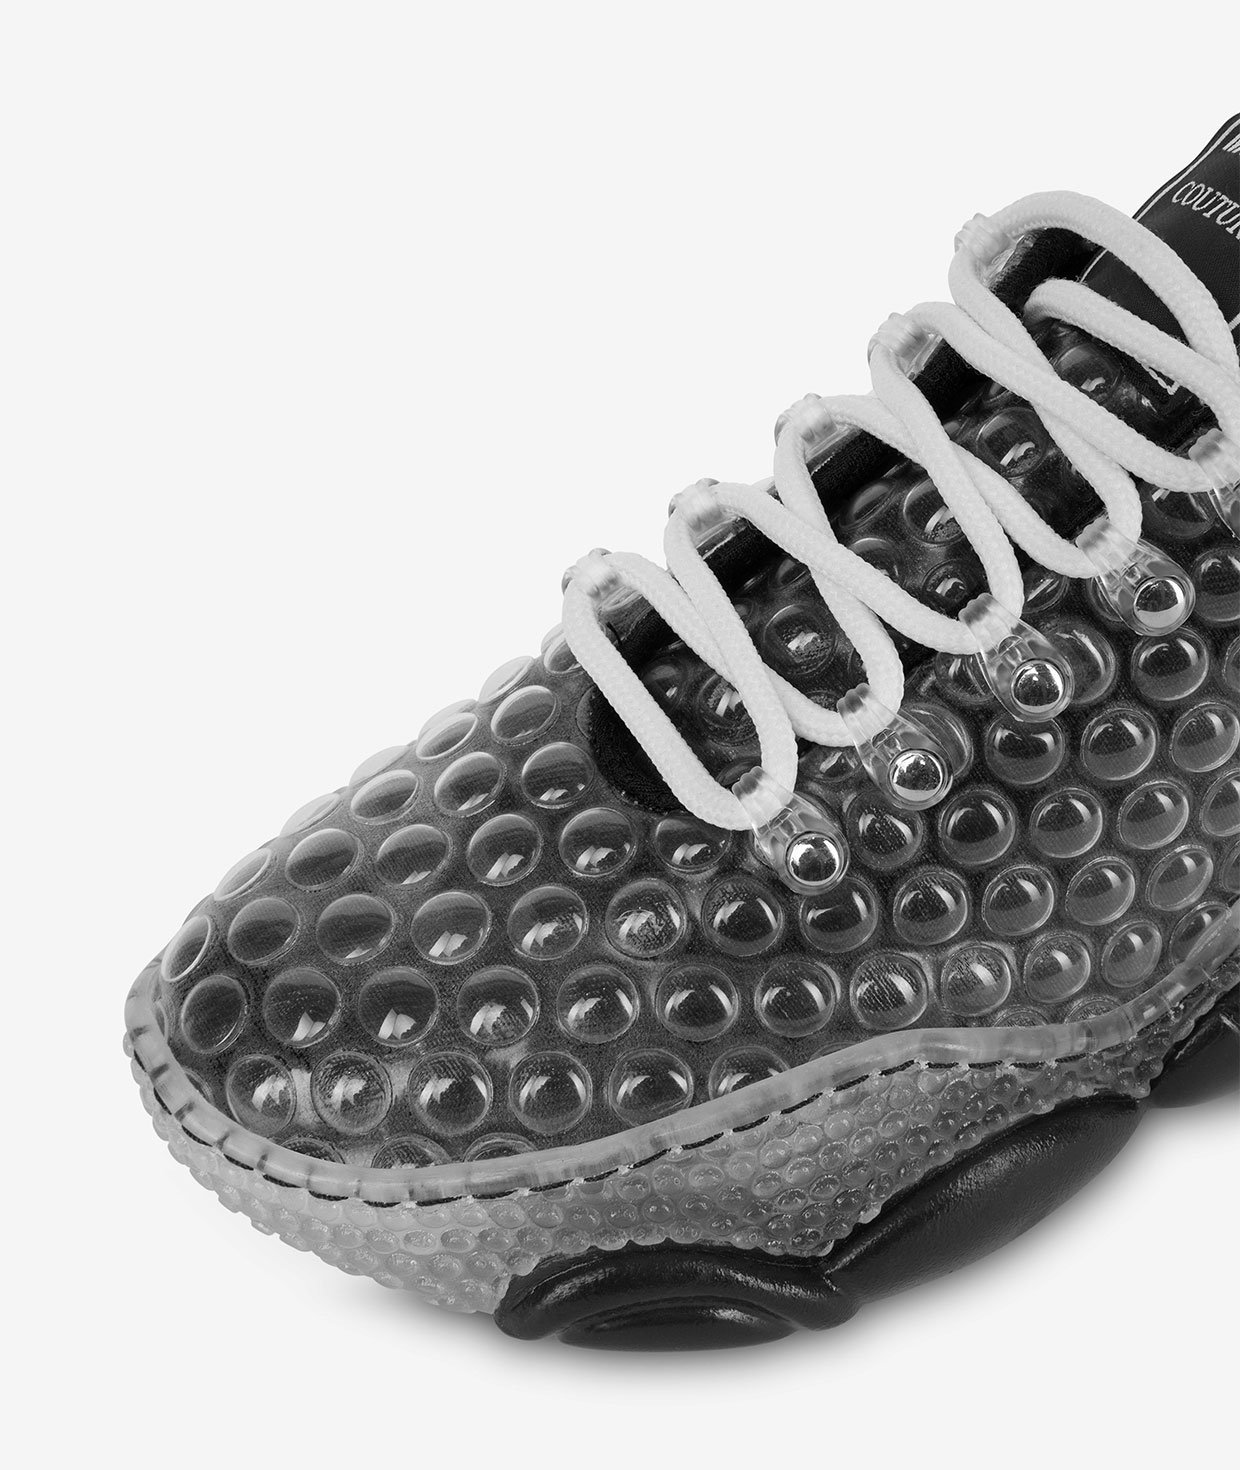 Moschino Bubble Wrap Sneakers